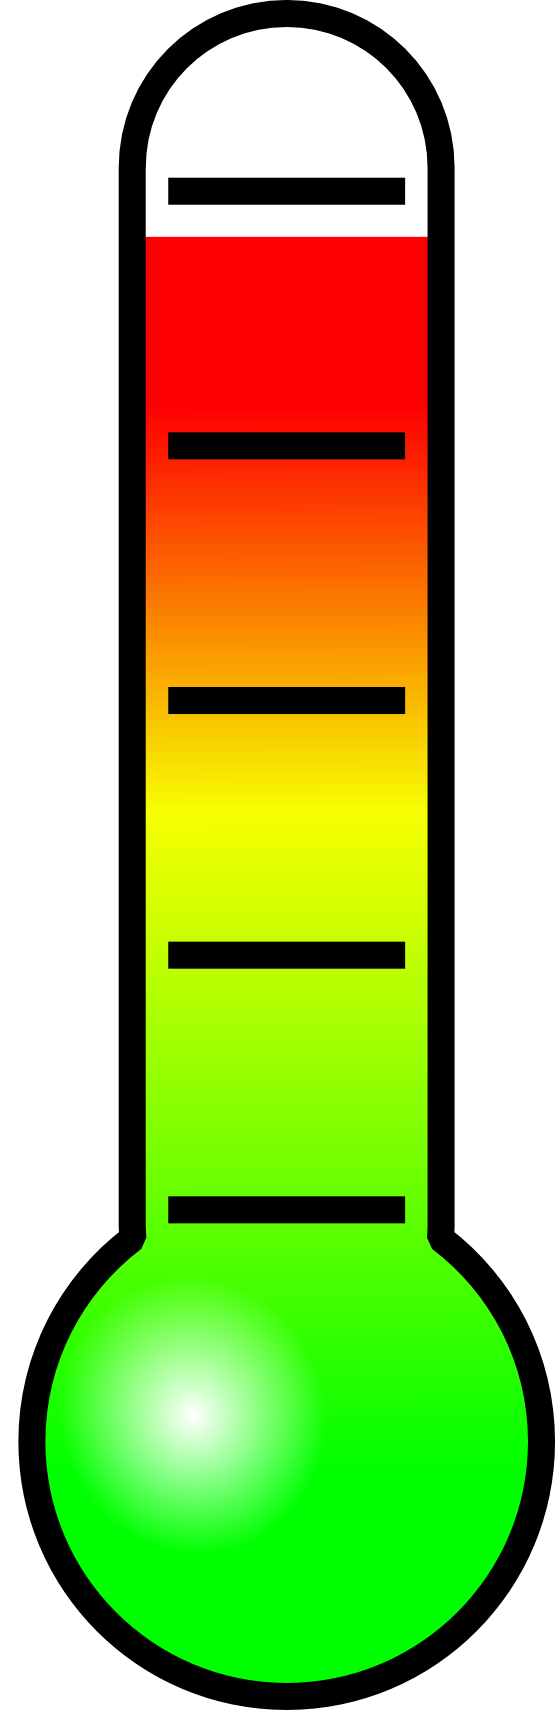 Heat clipart thermometer. Thermometre gifi gallery of